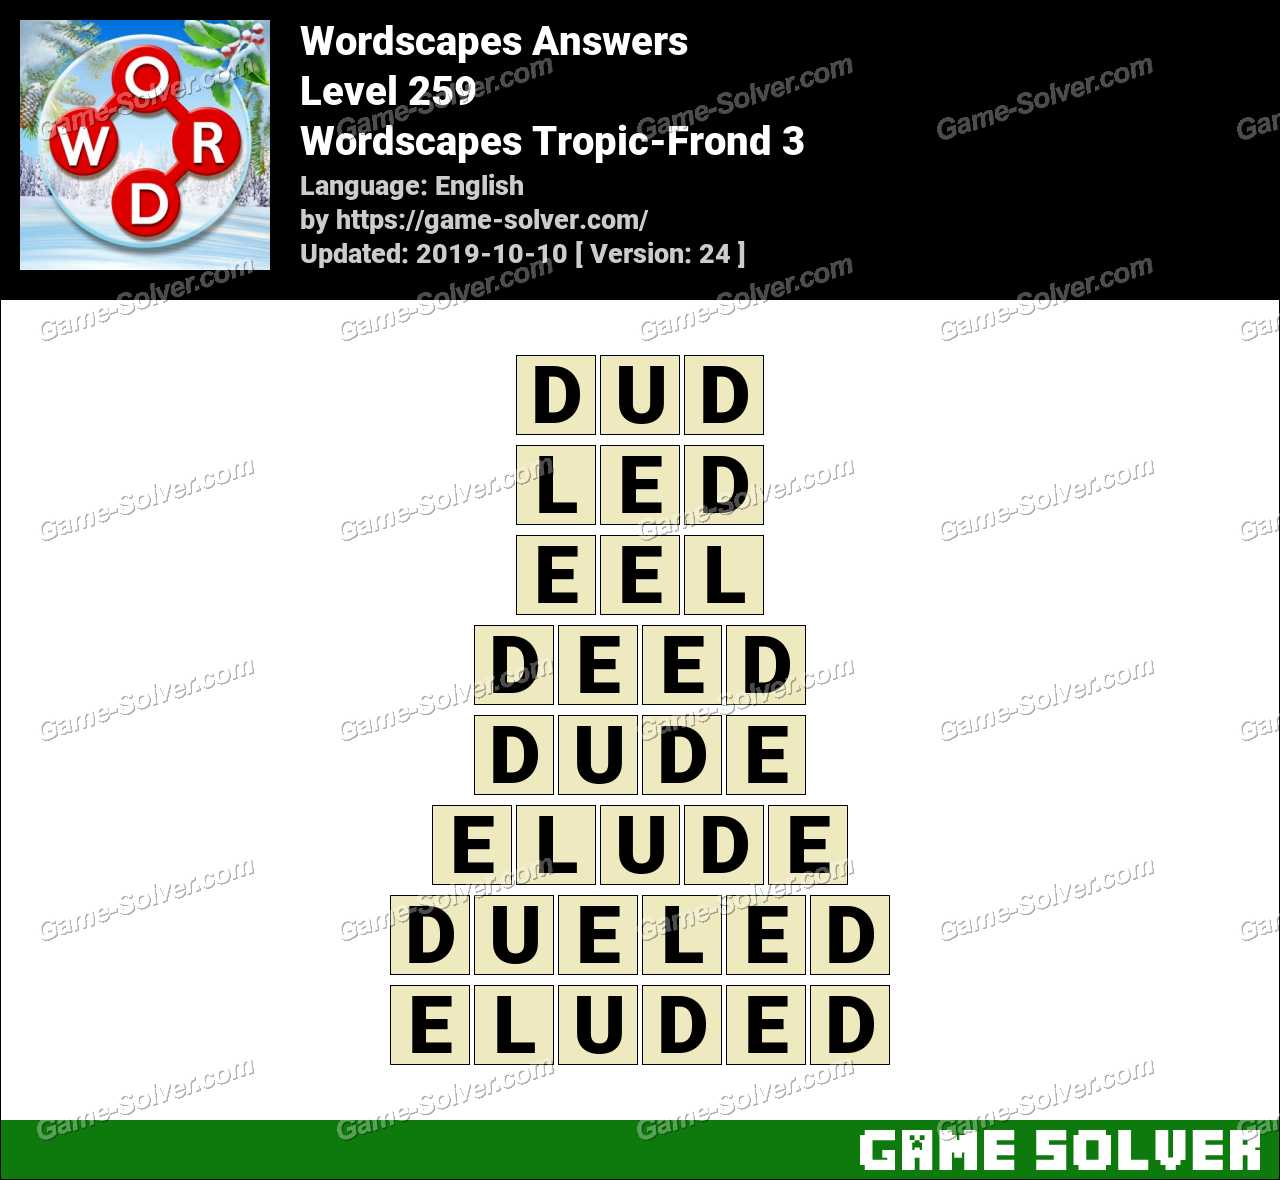 Wordscapes Tropic-Frond 3 Answers